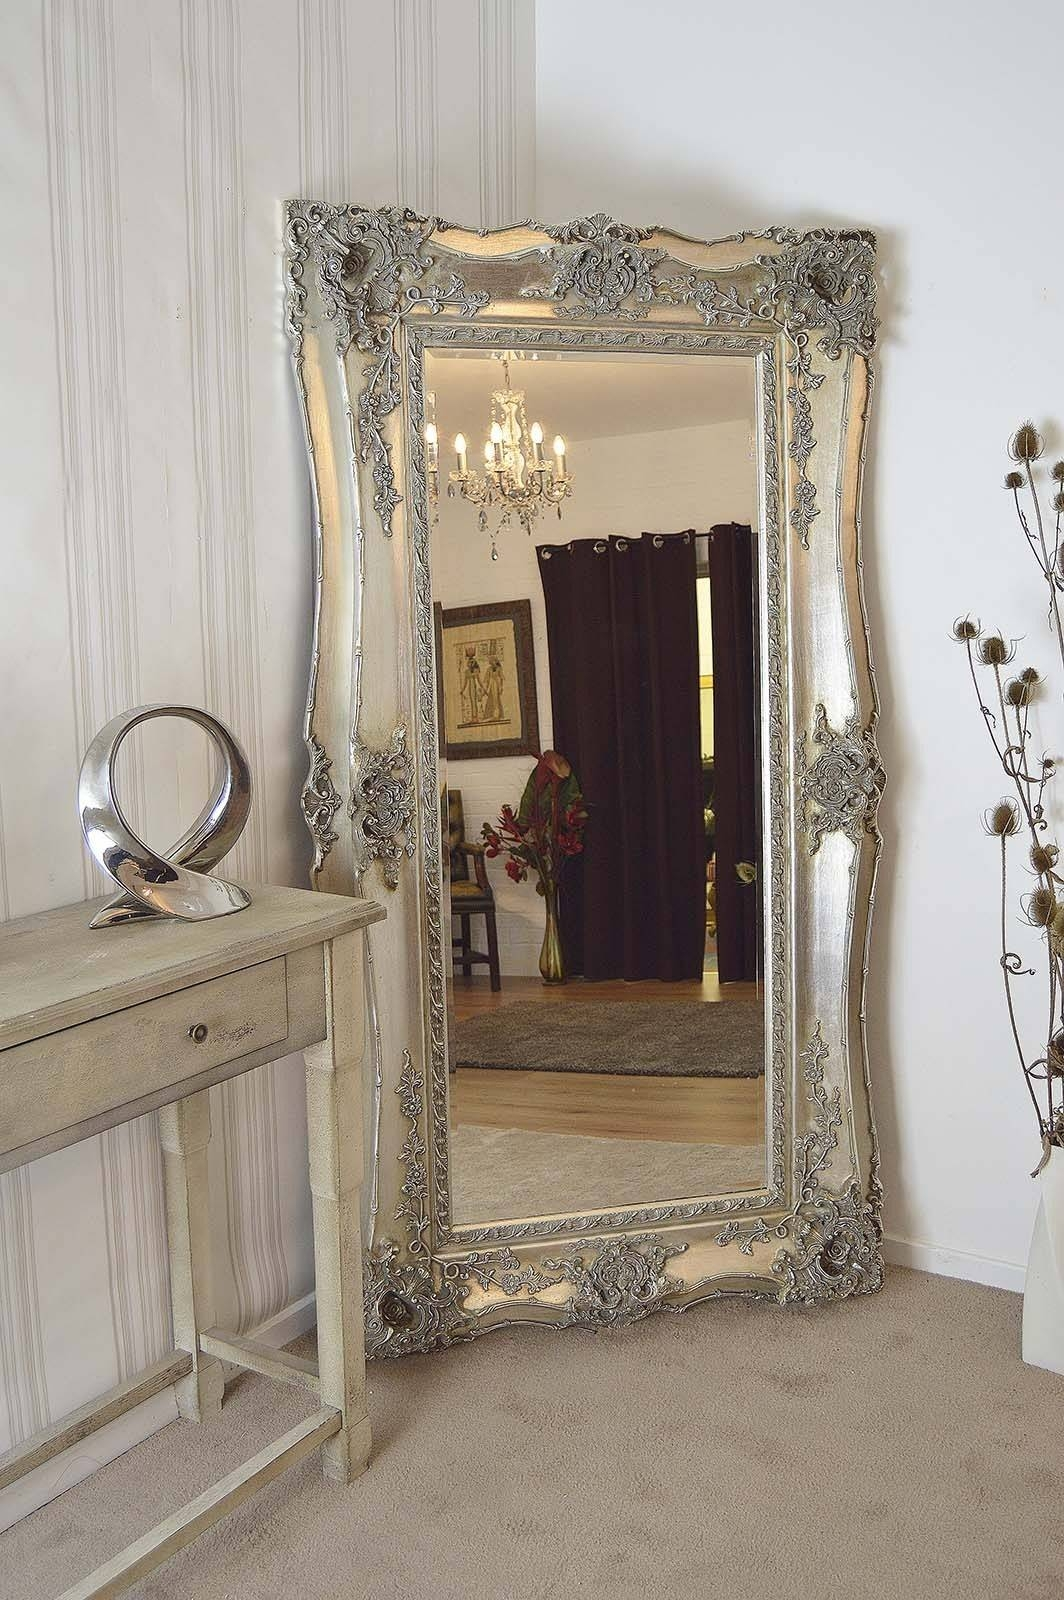 Large Antique Wall Mirror Ornate Frame Antique Ornate Wall Mirrors with regard to Large Ornate Mirrors for Wall (Image 11 of 25)